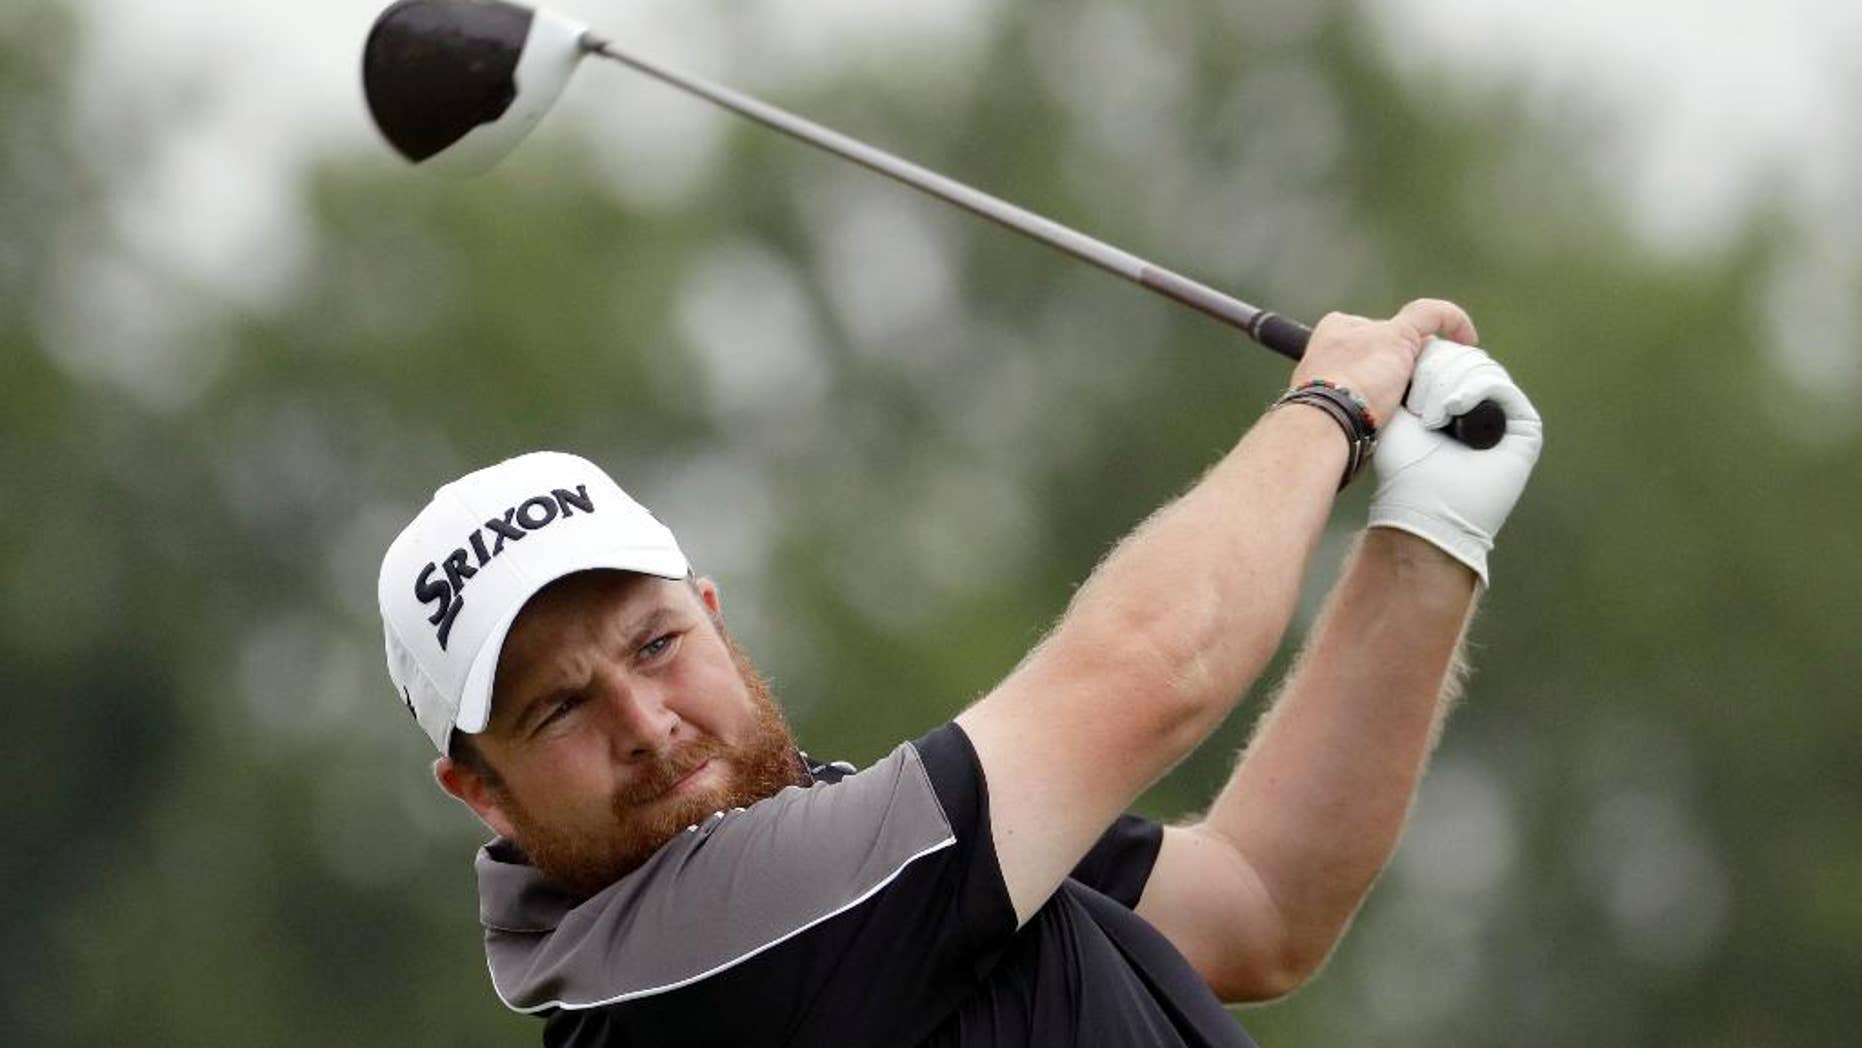 FILE - In this June 17, 2016, file photo, Shane Lowry, of Ireland, watches his tee shot on the 18th hole during the rain delayed first round of the U.S. Open golf championship at Oakmont Country Club in Oakmont, Pa. Lowry has pulled out of the Olympics because of concerns over the Zika virus. Lowry said Tuesday, June 28, 2016, he received medical advice that he should not travel to Rio de Janeiro. (AP Photo/Charlie Riedel, File)